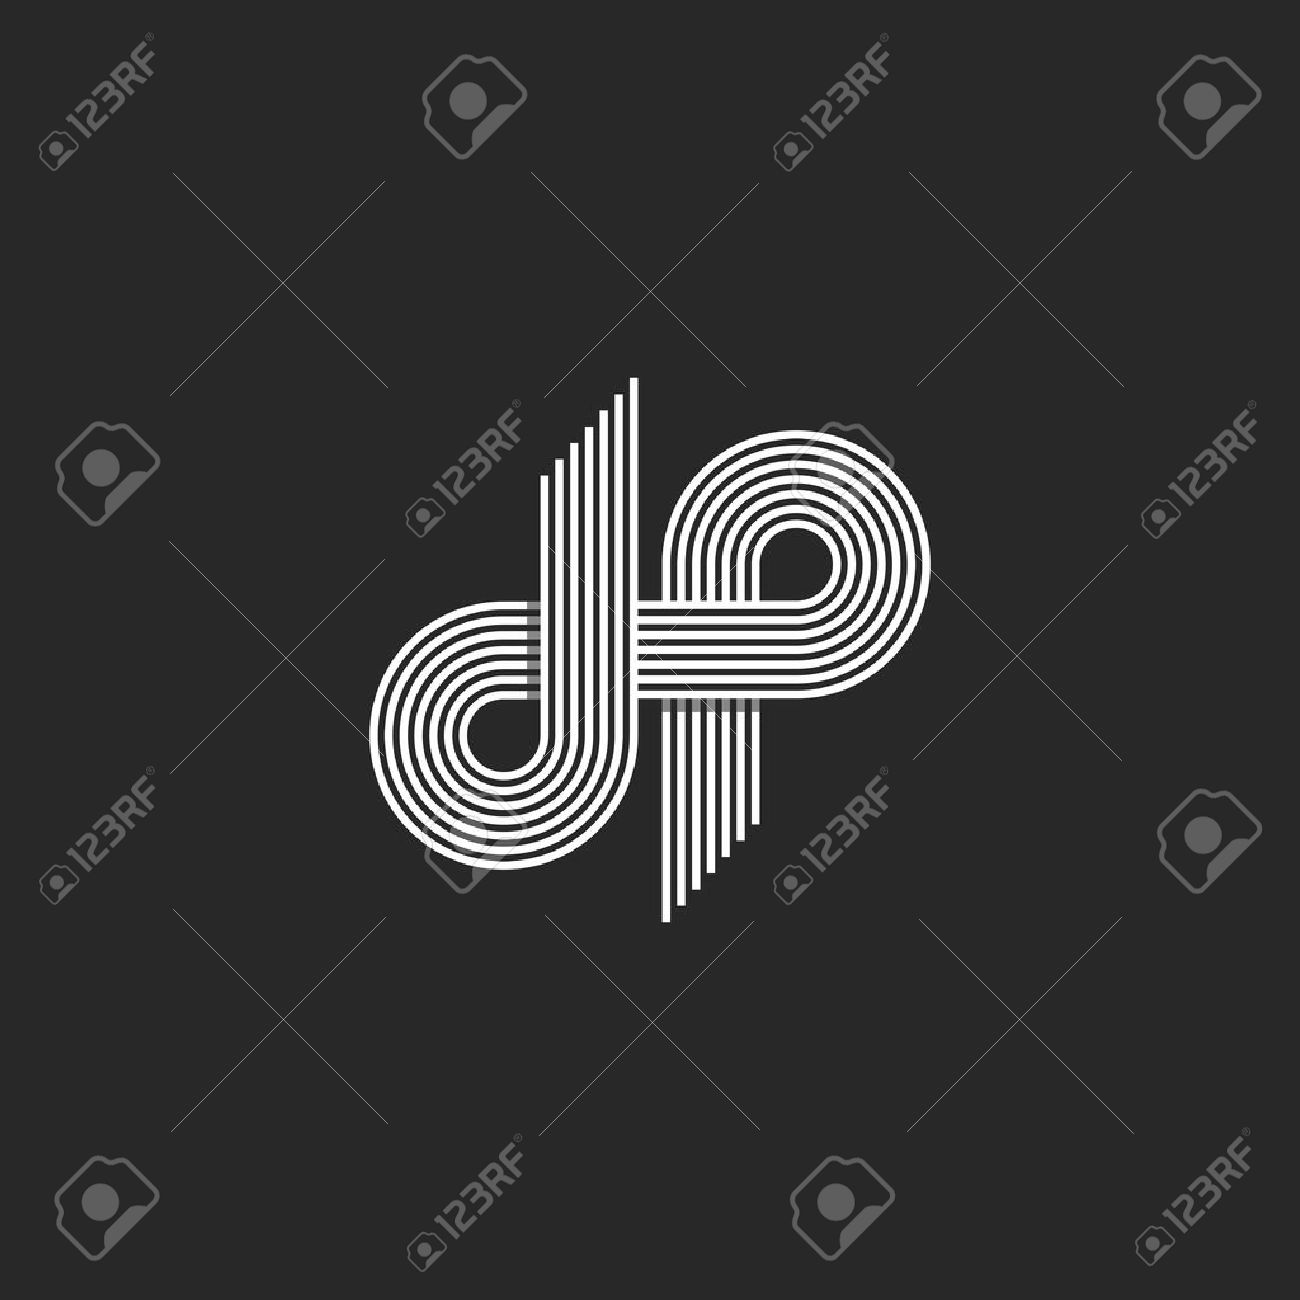 Logo dp letter monogram offset thin line style overlapping design element d and